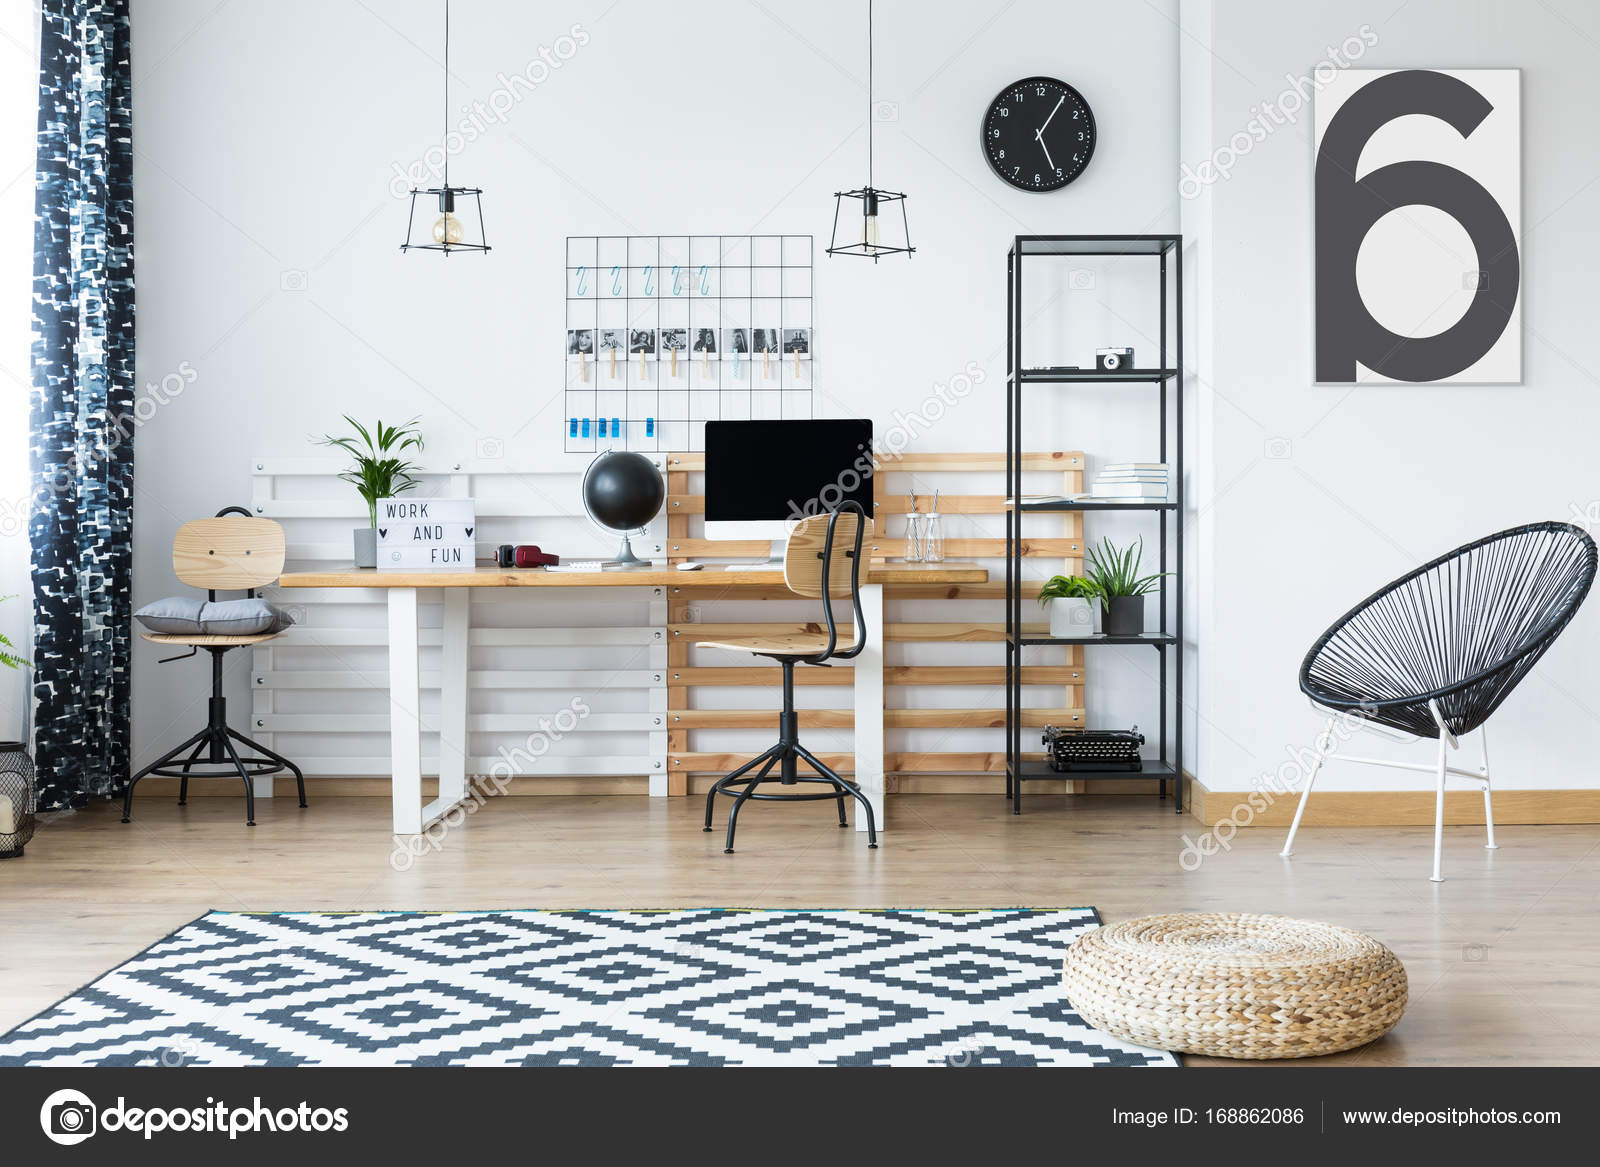 Braided Pouf On Clock And White Carpet In Hygge Style Home Office With  Designed Chair U2014 Photo By Photographee.eu